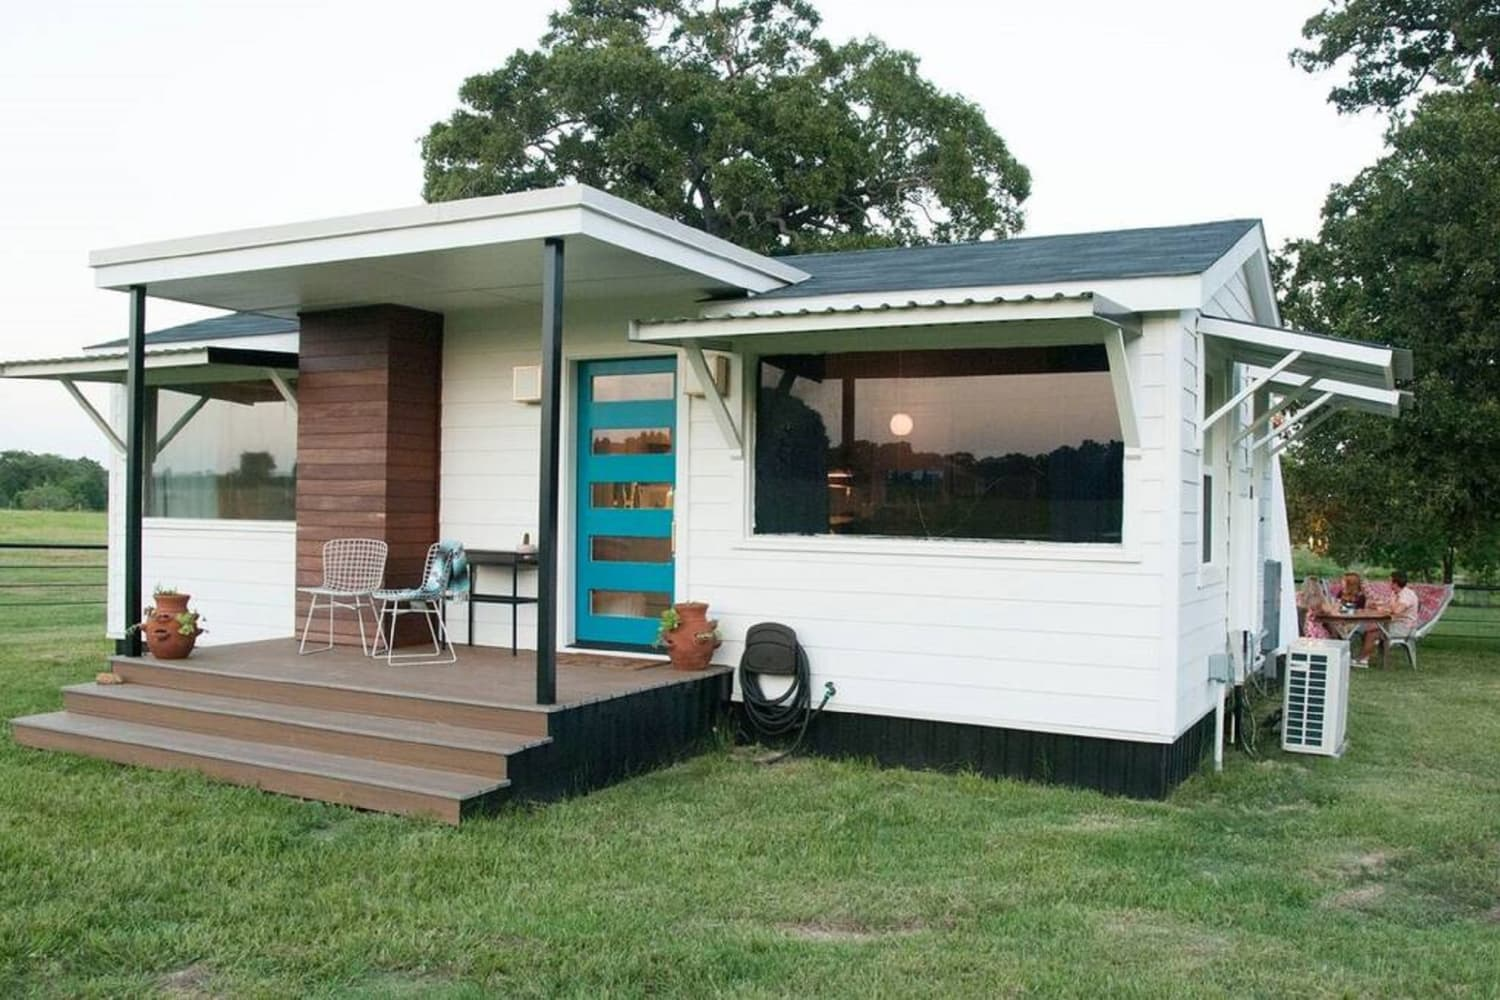 This Tiny House Was Snapped Up By Its New Owners for Only $250